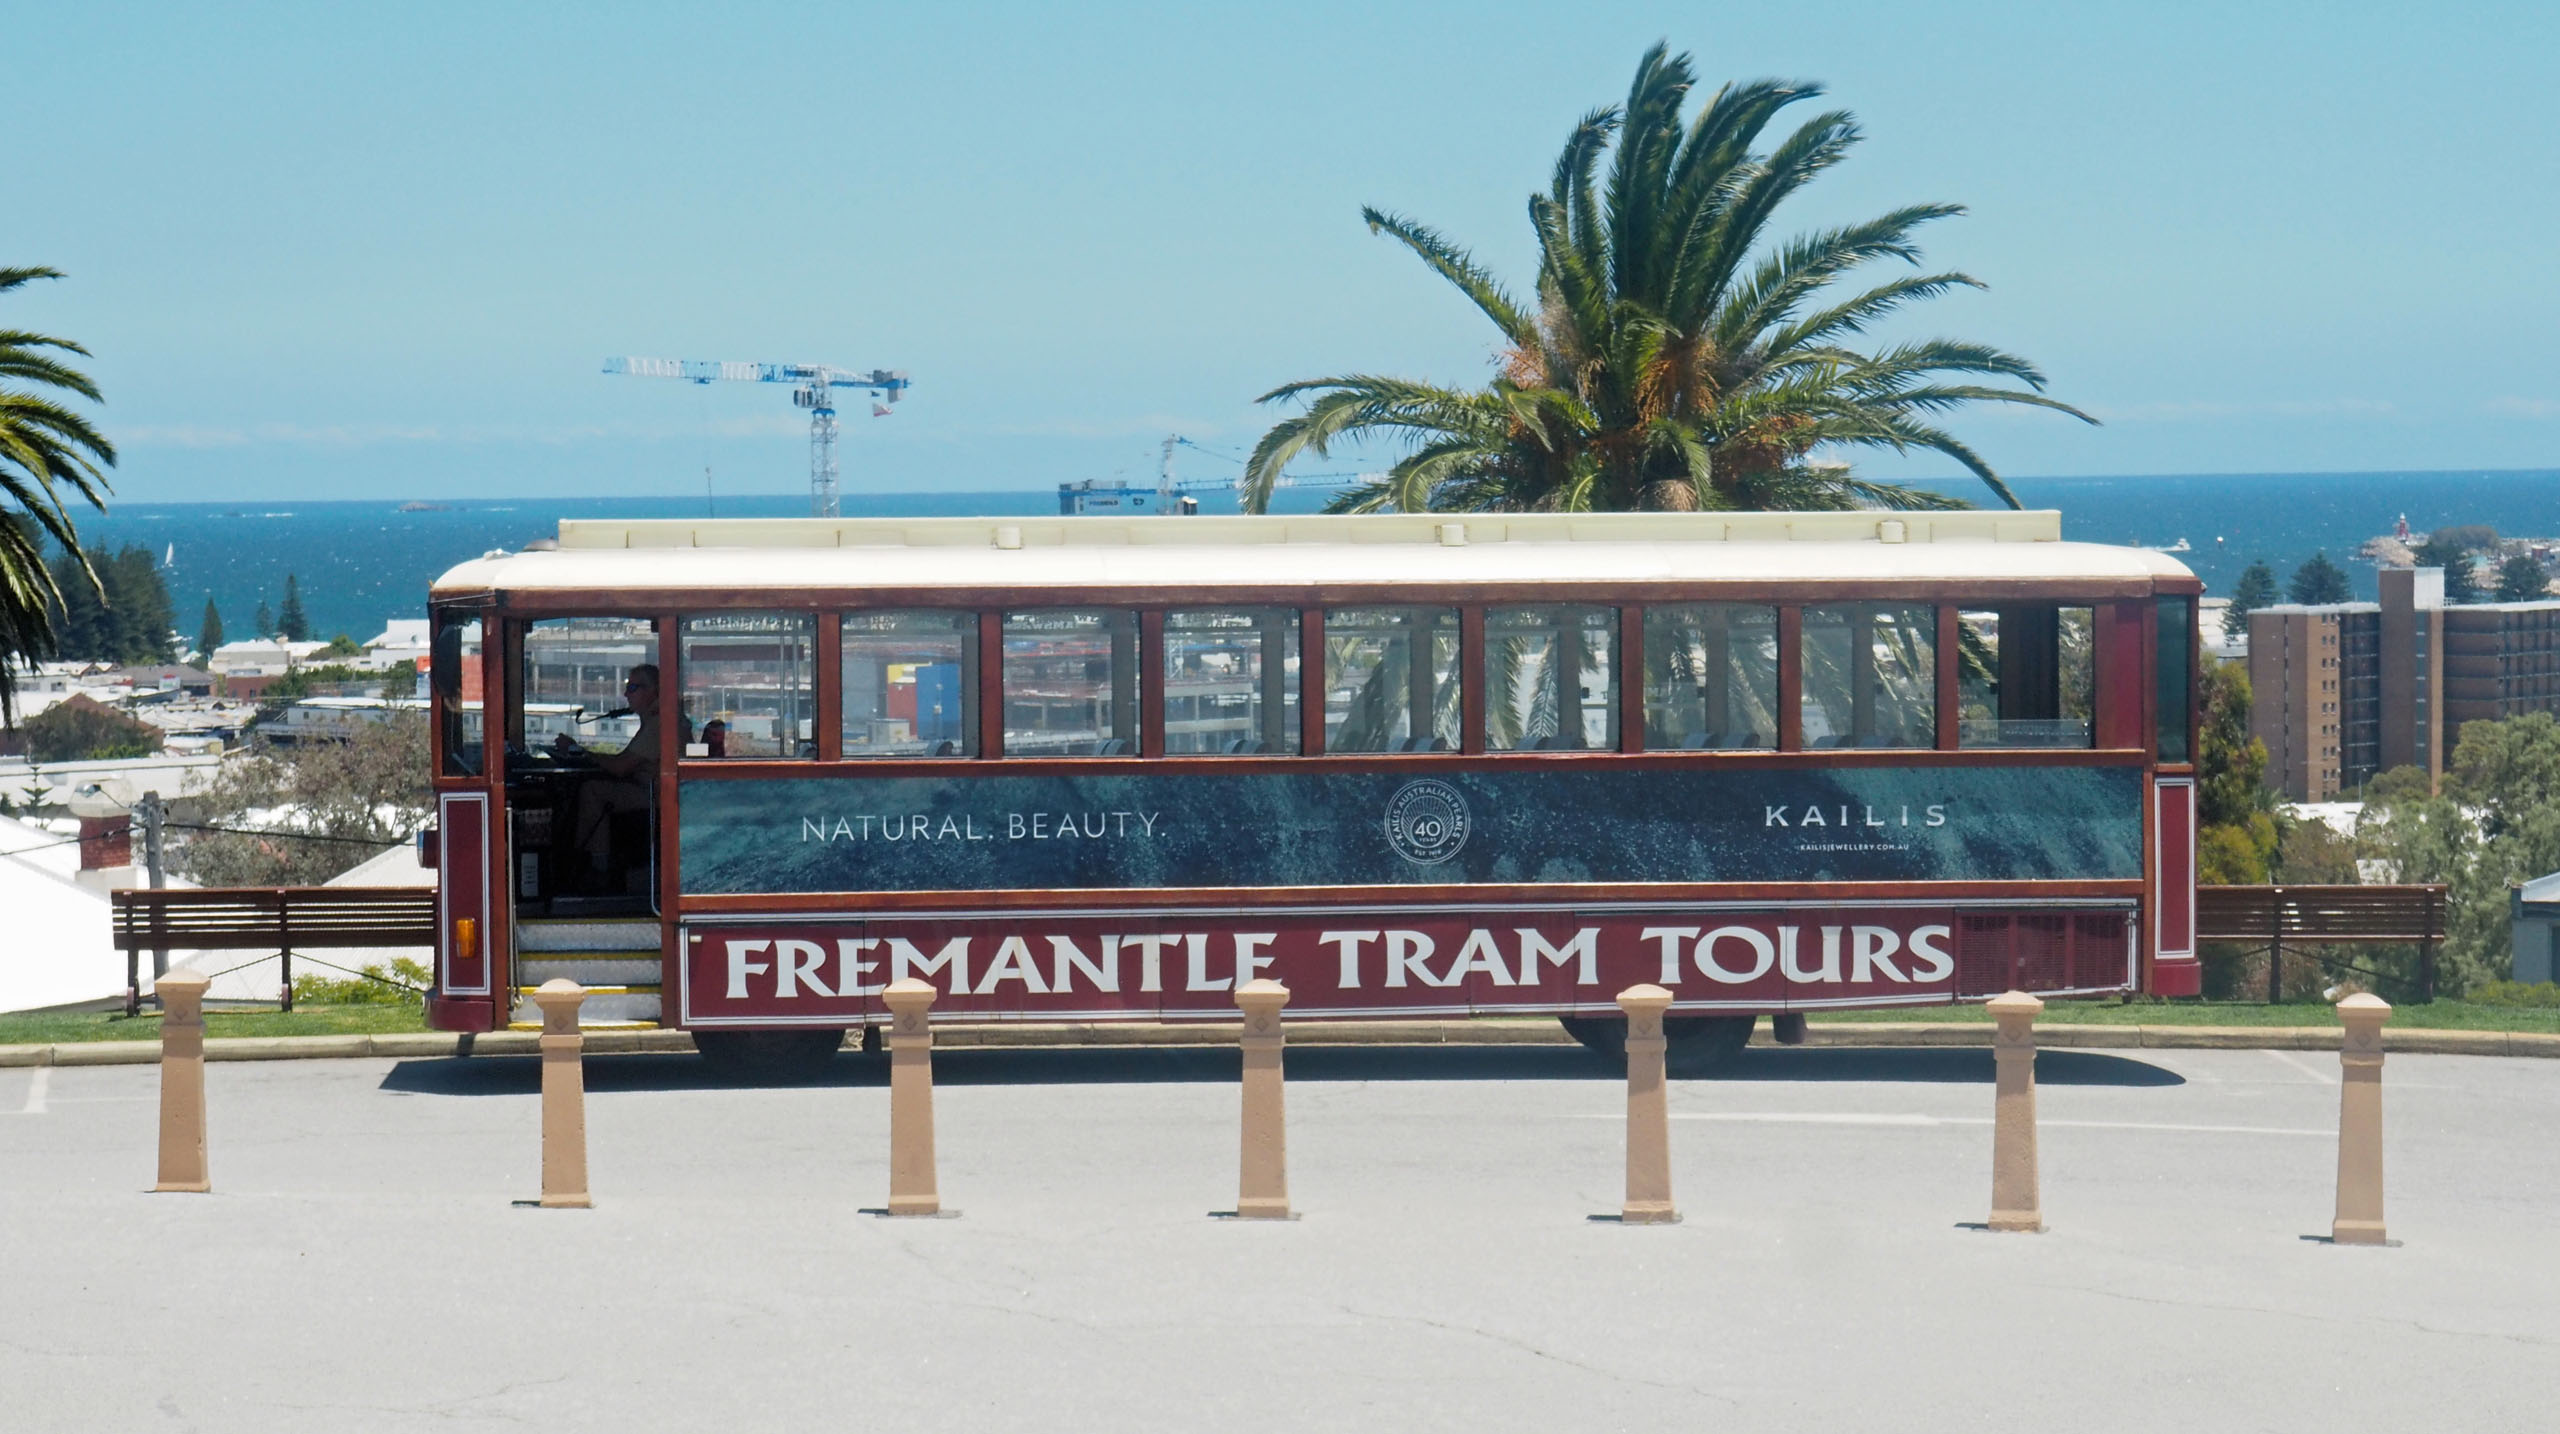 Fremantle Tramtour